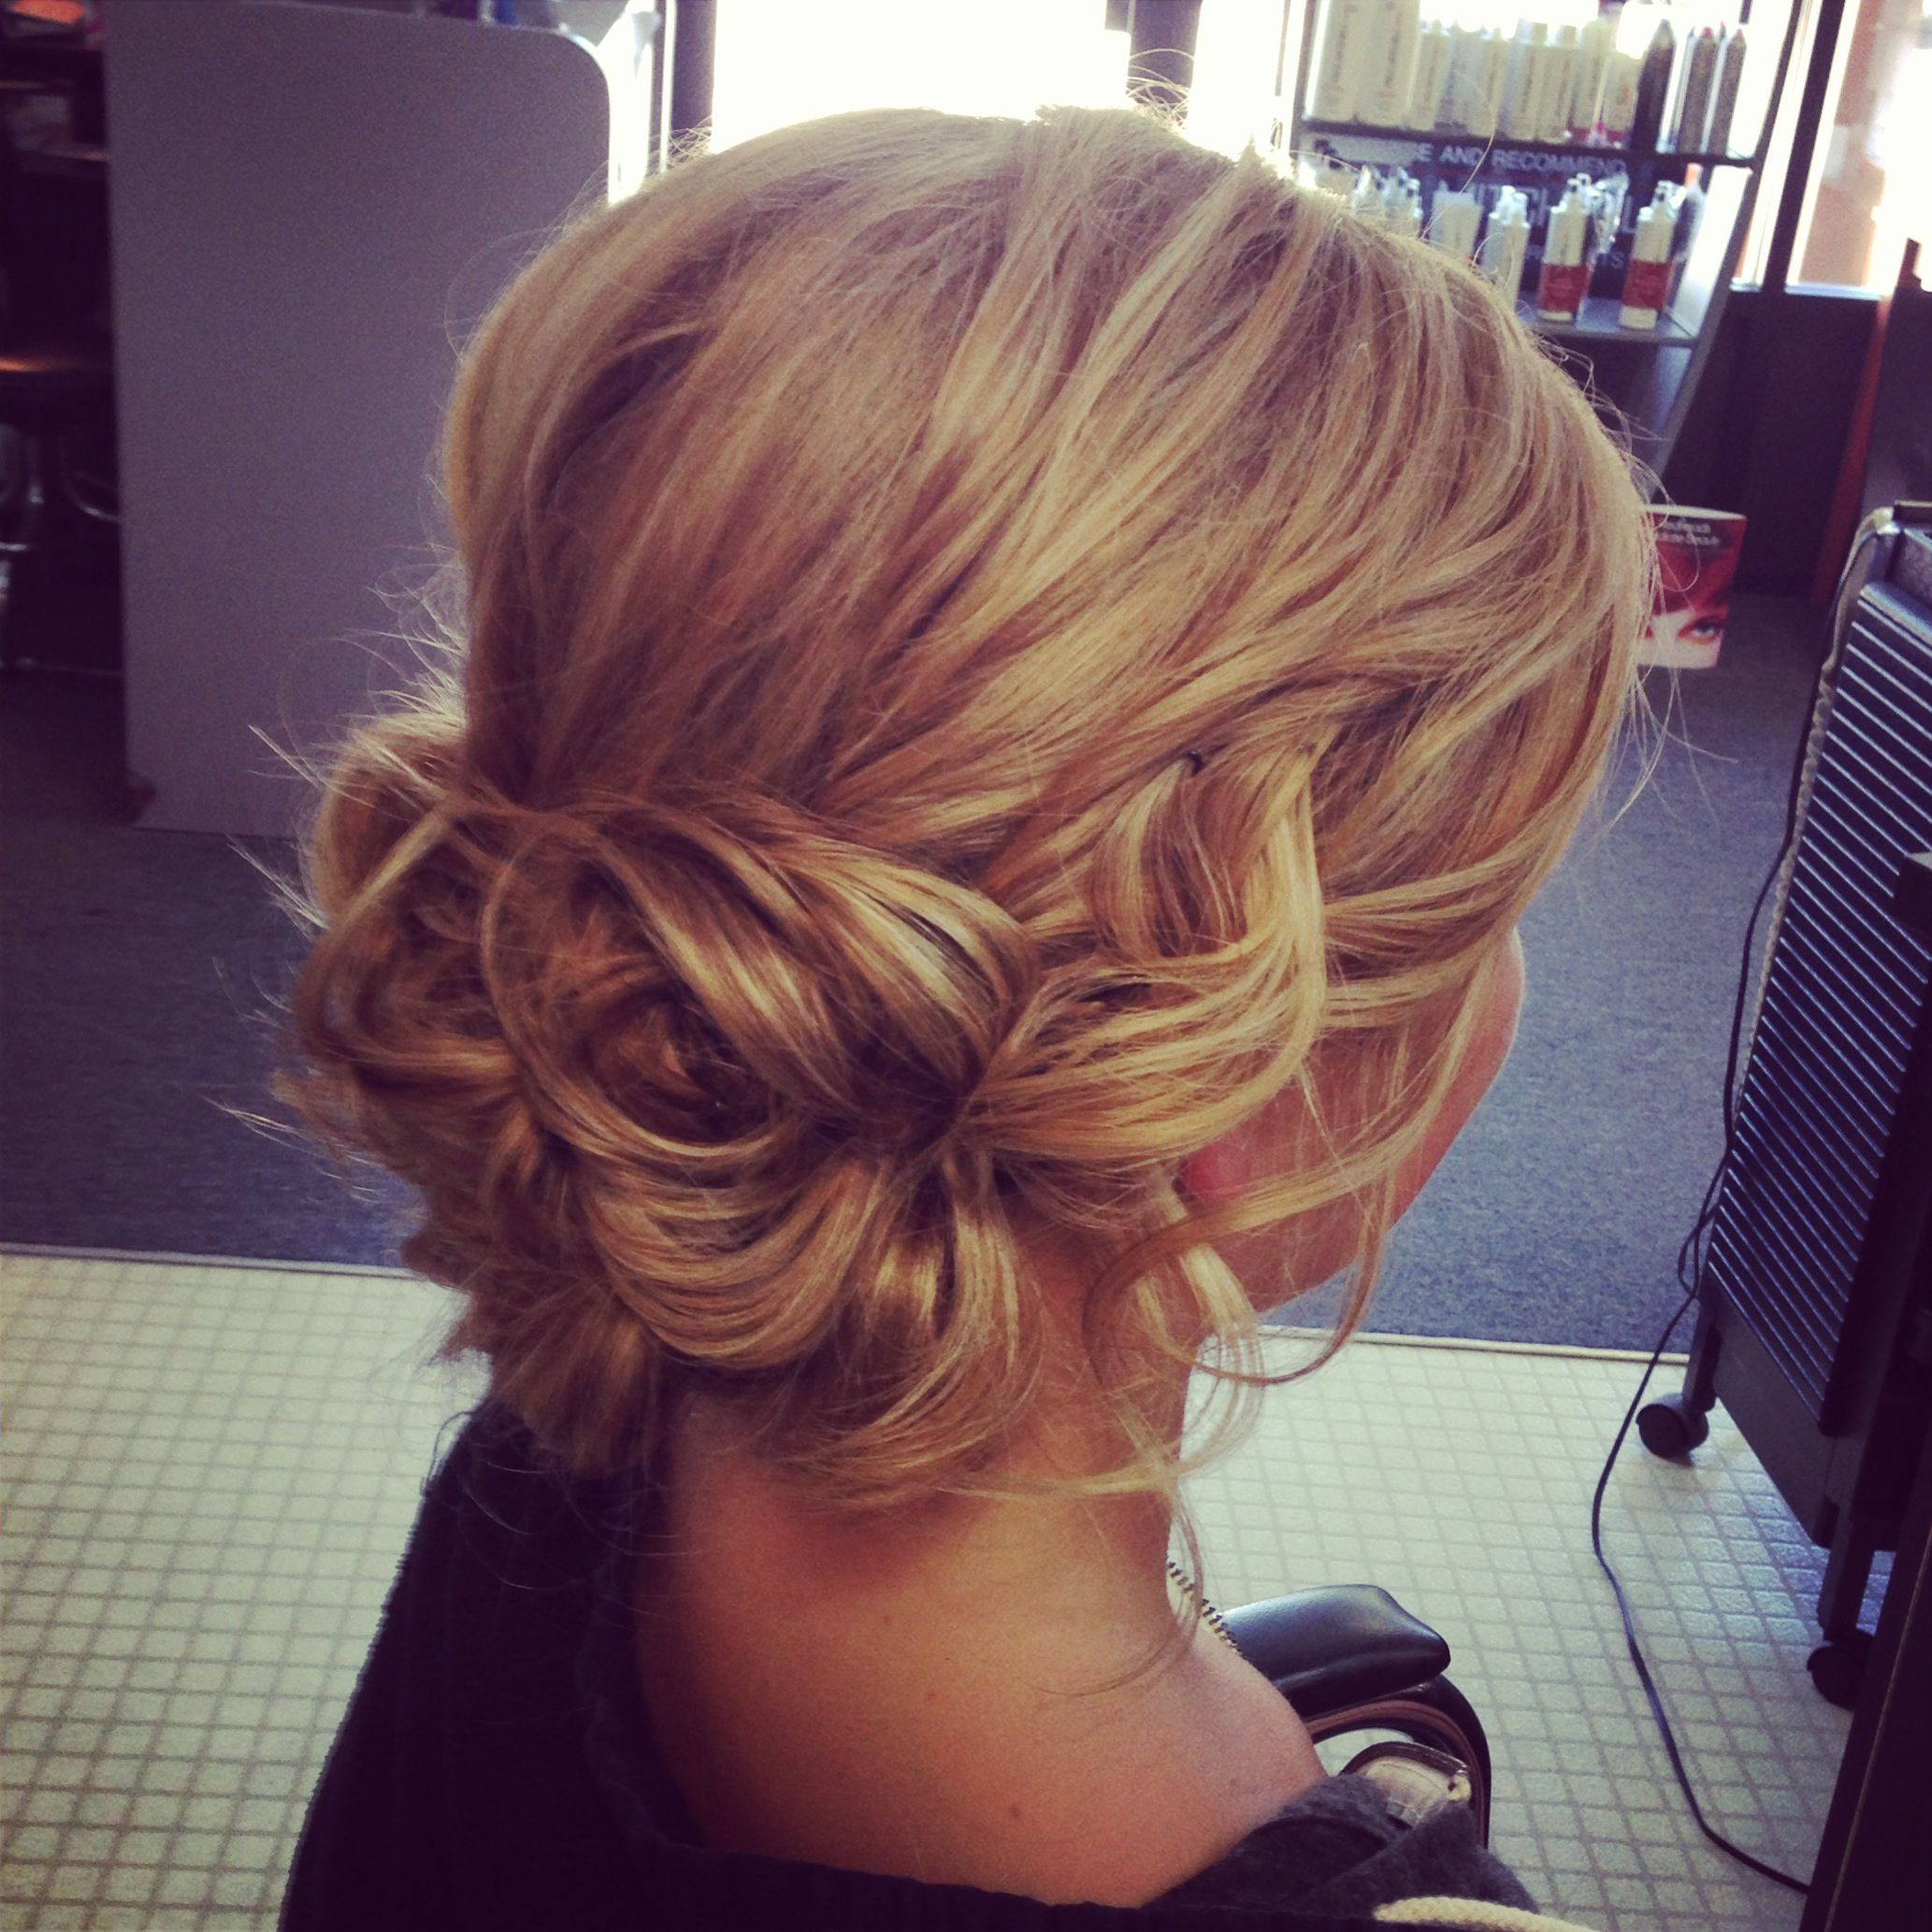 Hairstyles For Weddings Pinterest: The 25+ Best Soft Updo Ideas On Pinterest